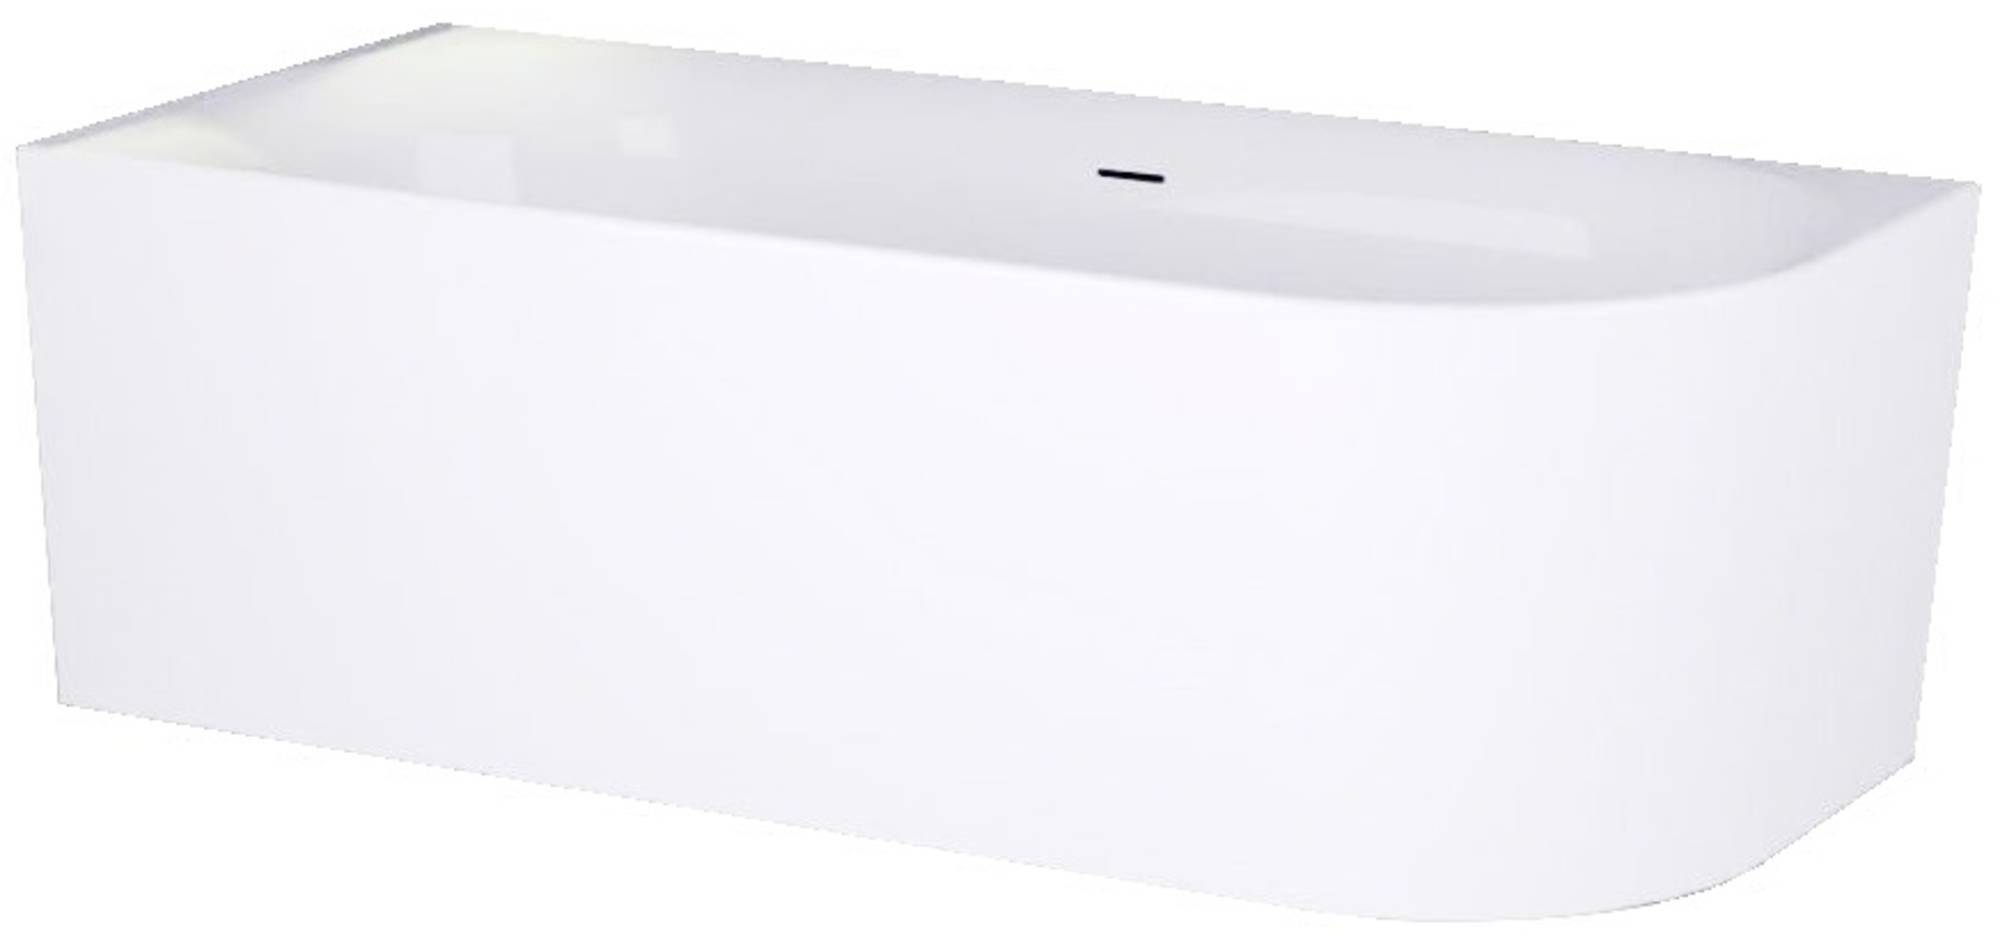 Ben Vico Bad Back to Wall L met Sleuf 155x80x60,5 cm Glans Wit